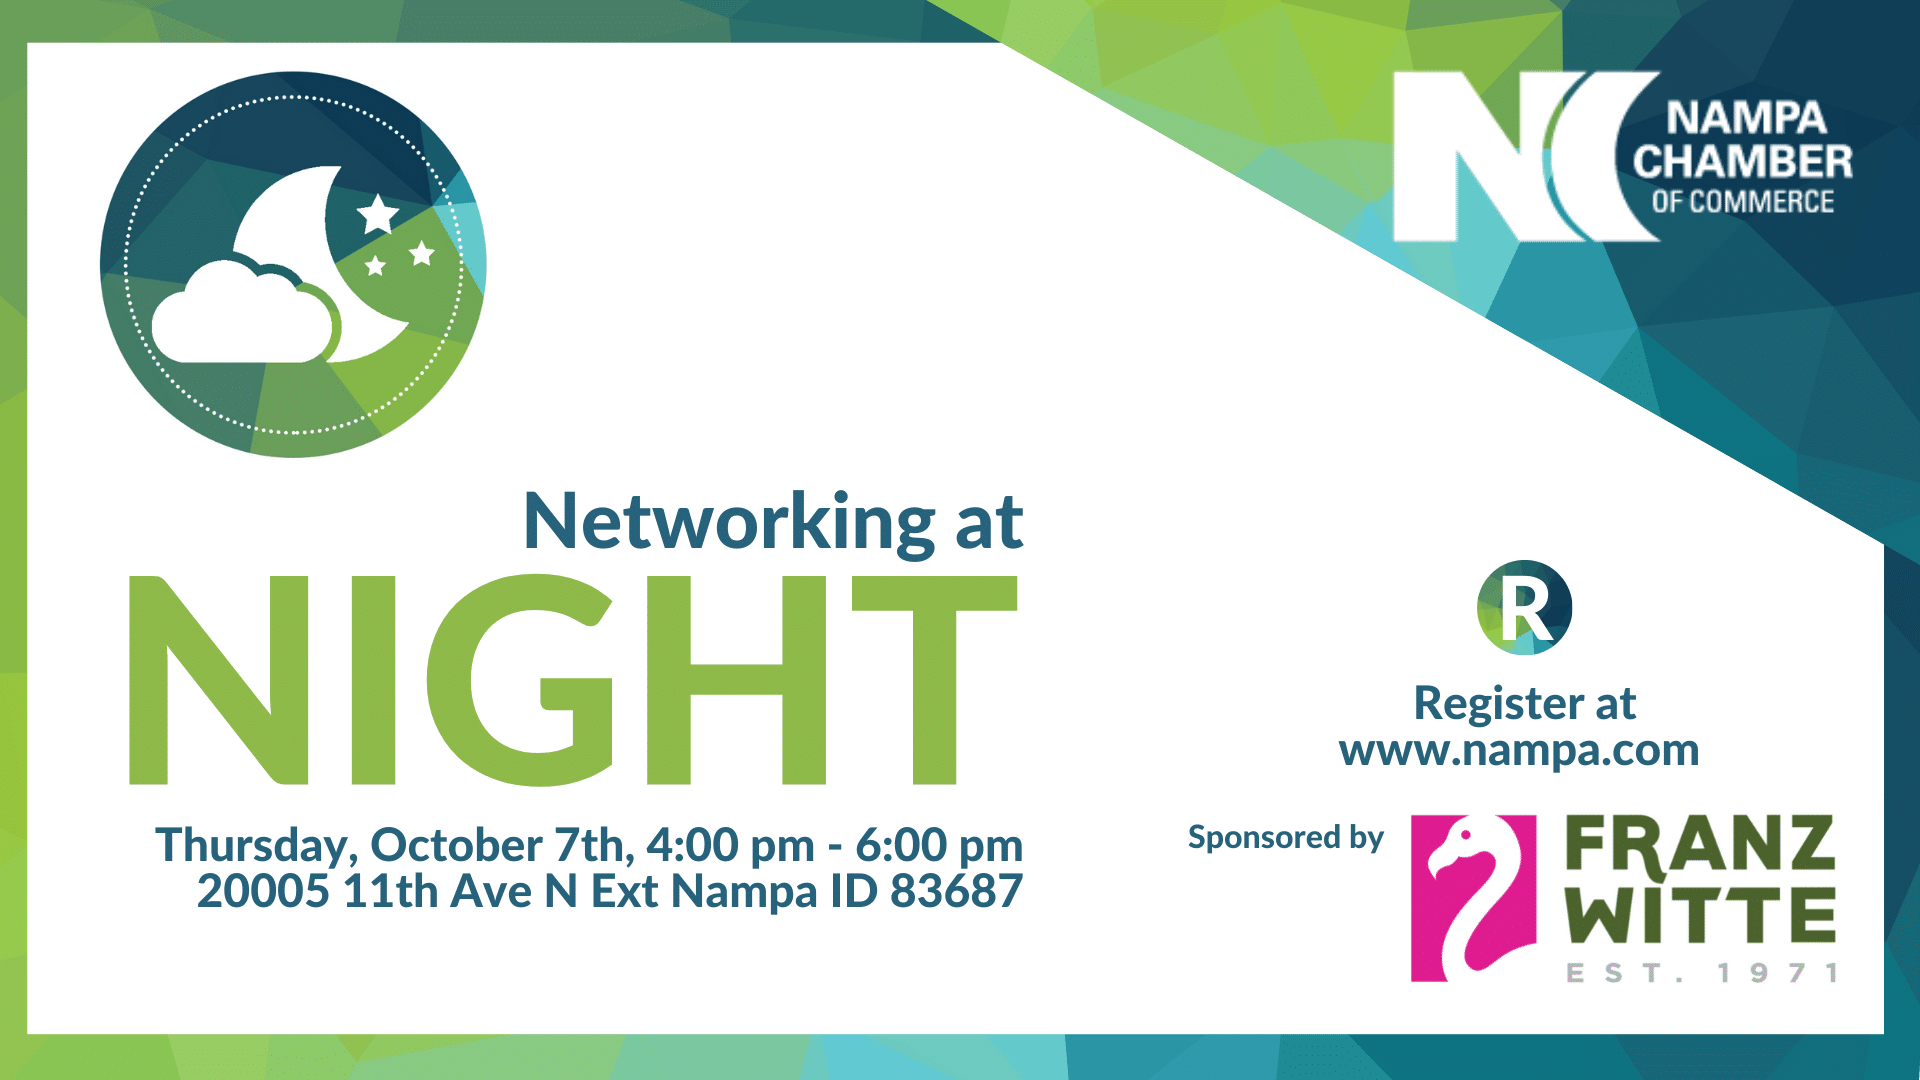 Networking at Night hosted by Nampa Chamber of Commerce